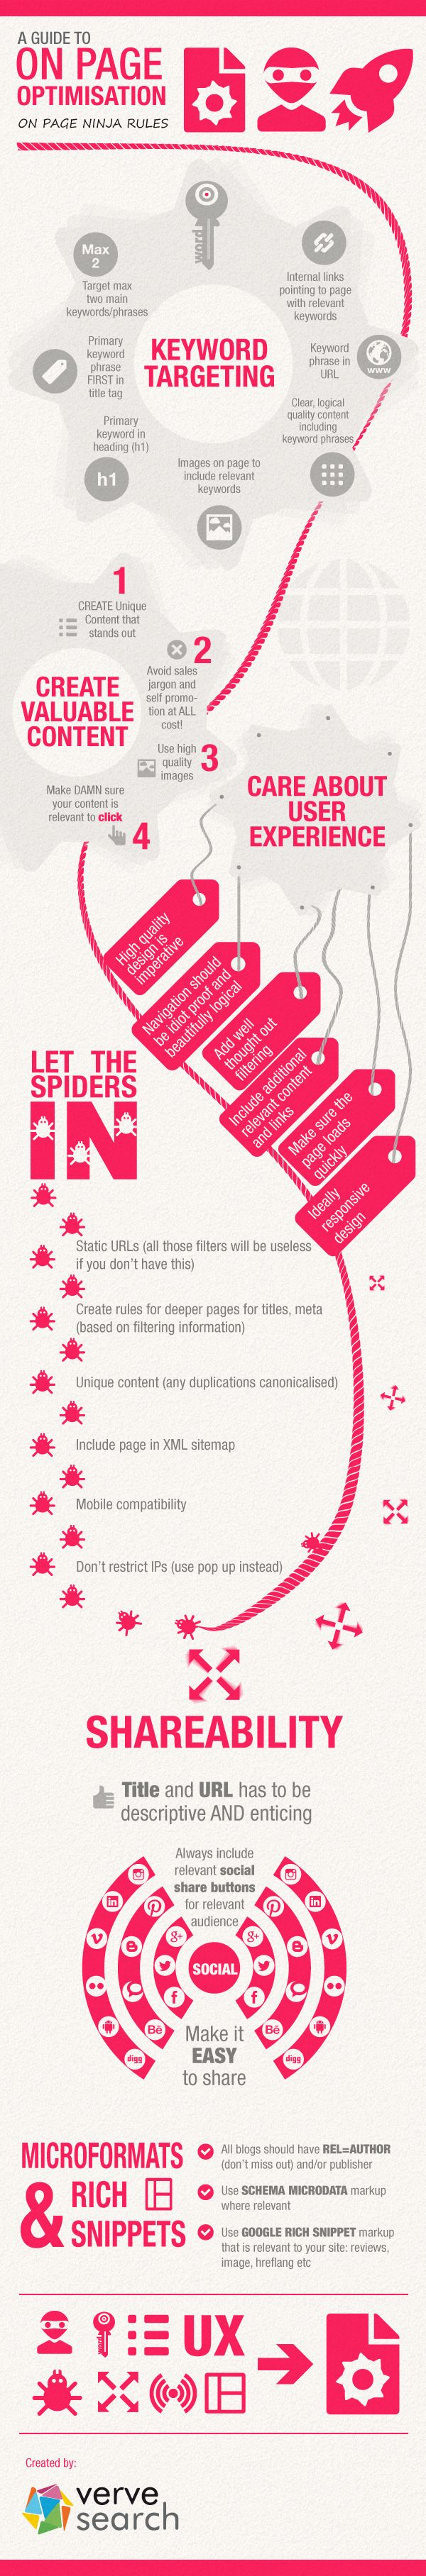 [Collection] Easy to Follow and Learn SEO through Infographic